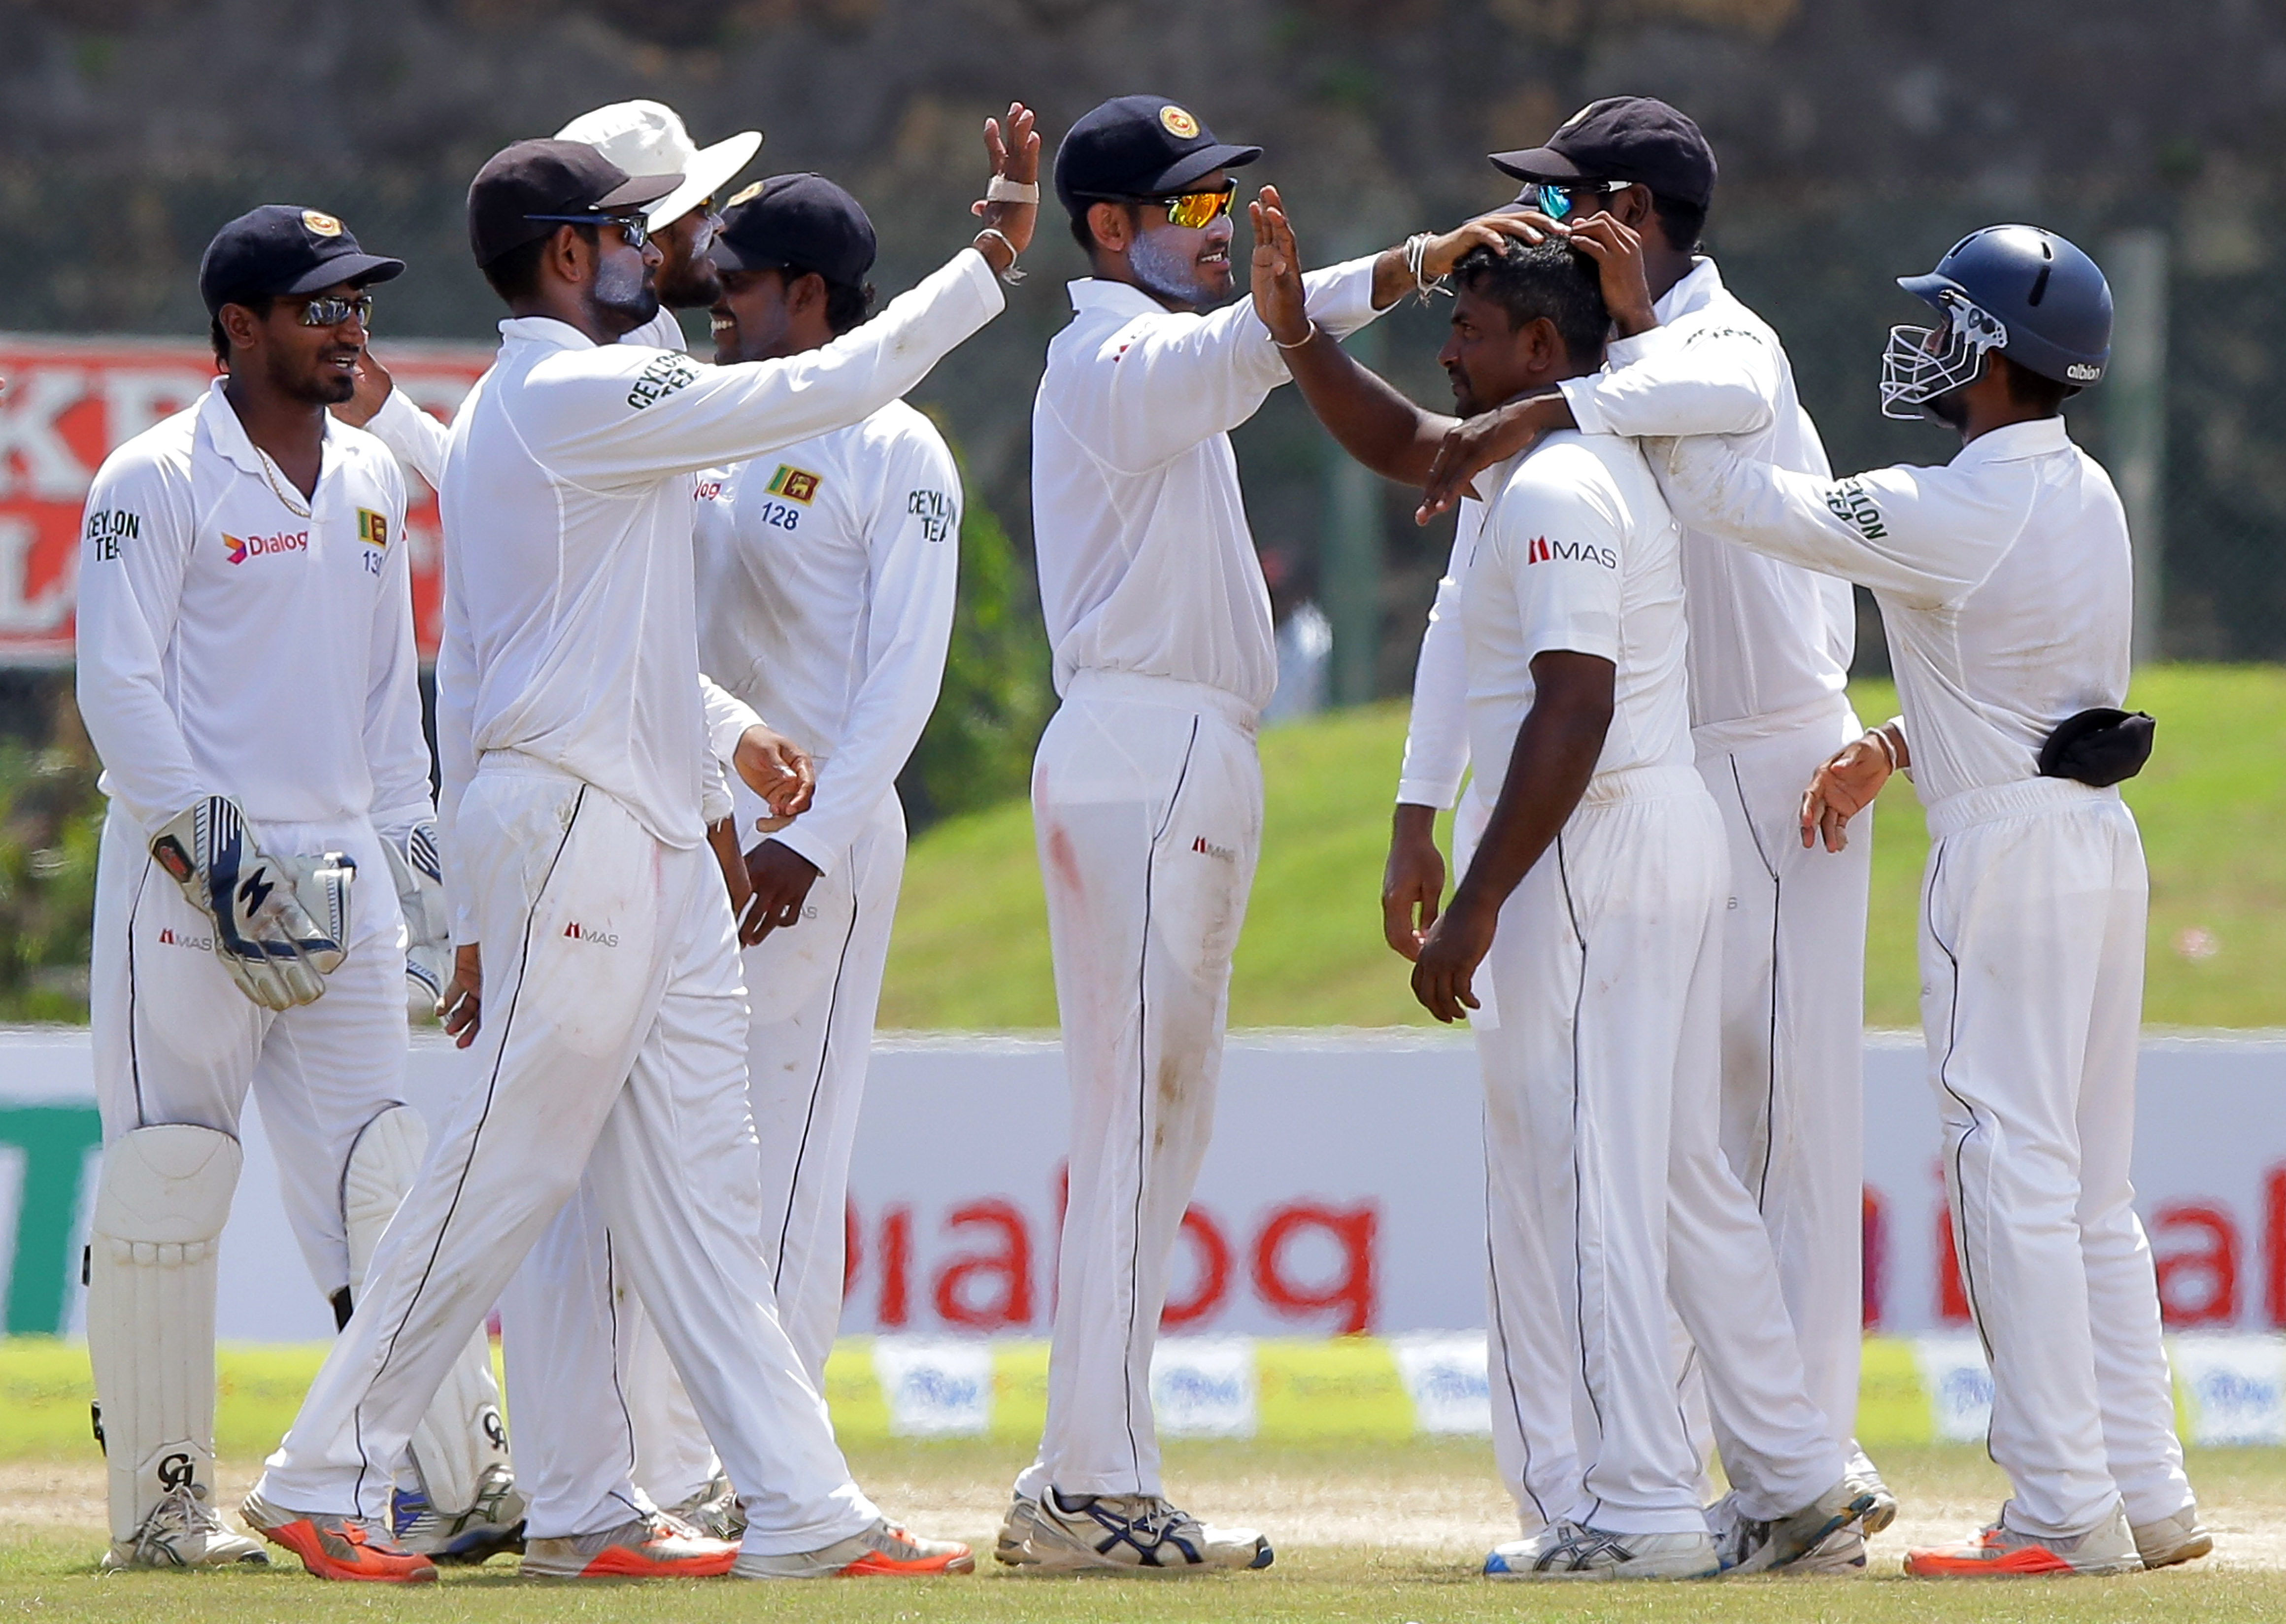 Sri Lankan cricketers congratulate bowler Rangana Herath, without cap, for the dismissal of West Indies' Kemar Roach during the fourth day of the first test cricket match in Galle, Sri Lanka, Saturday, Oct. 17, 2015. ( AP Photo/ Pamod Nilru )